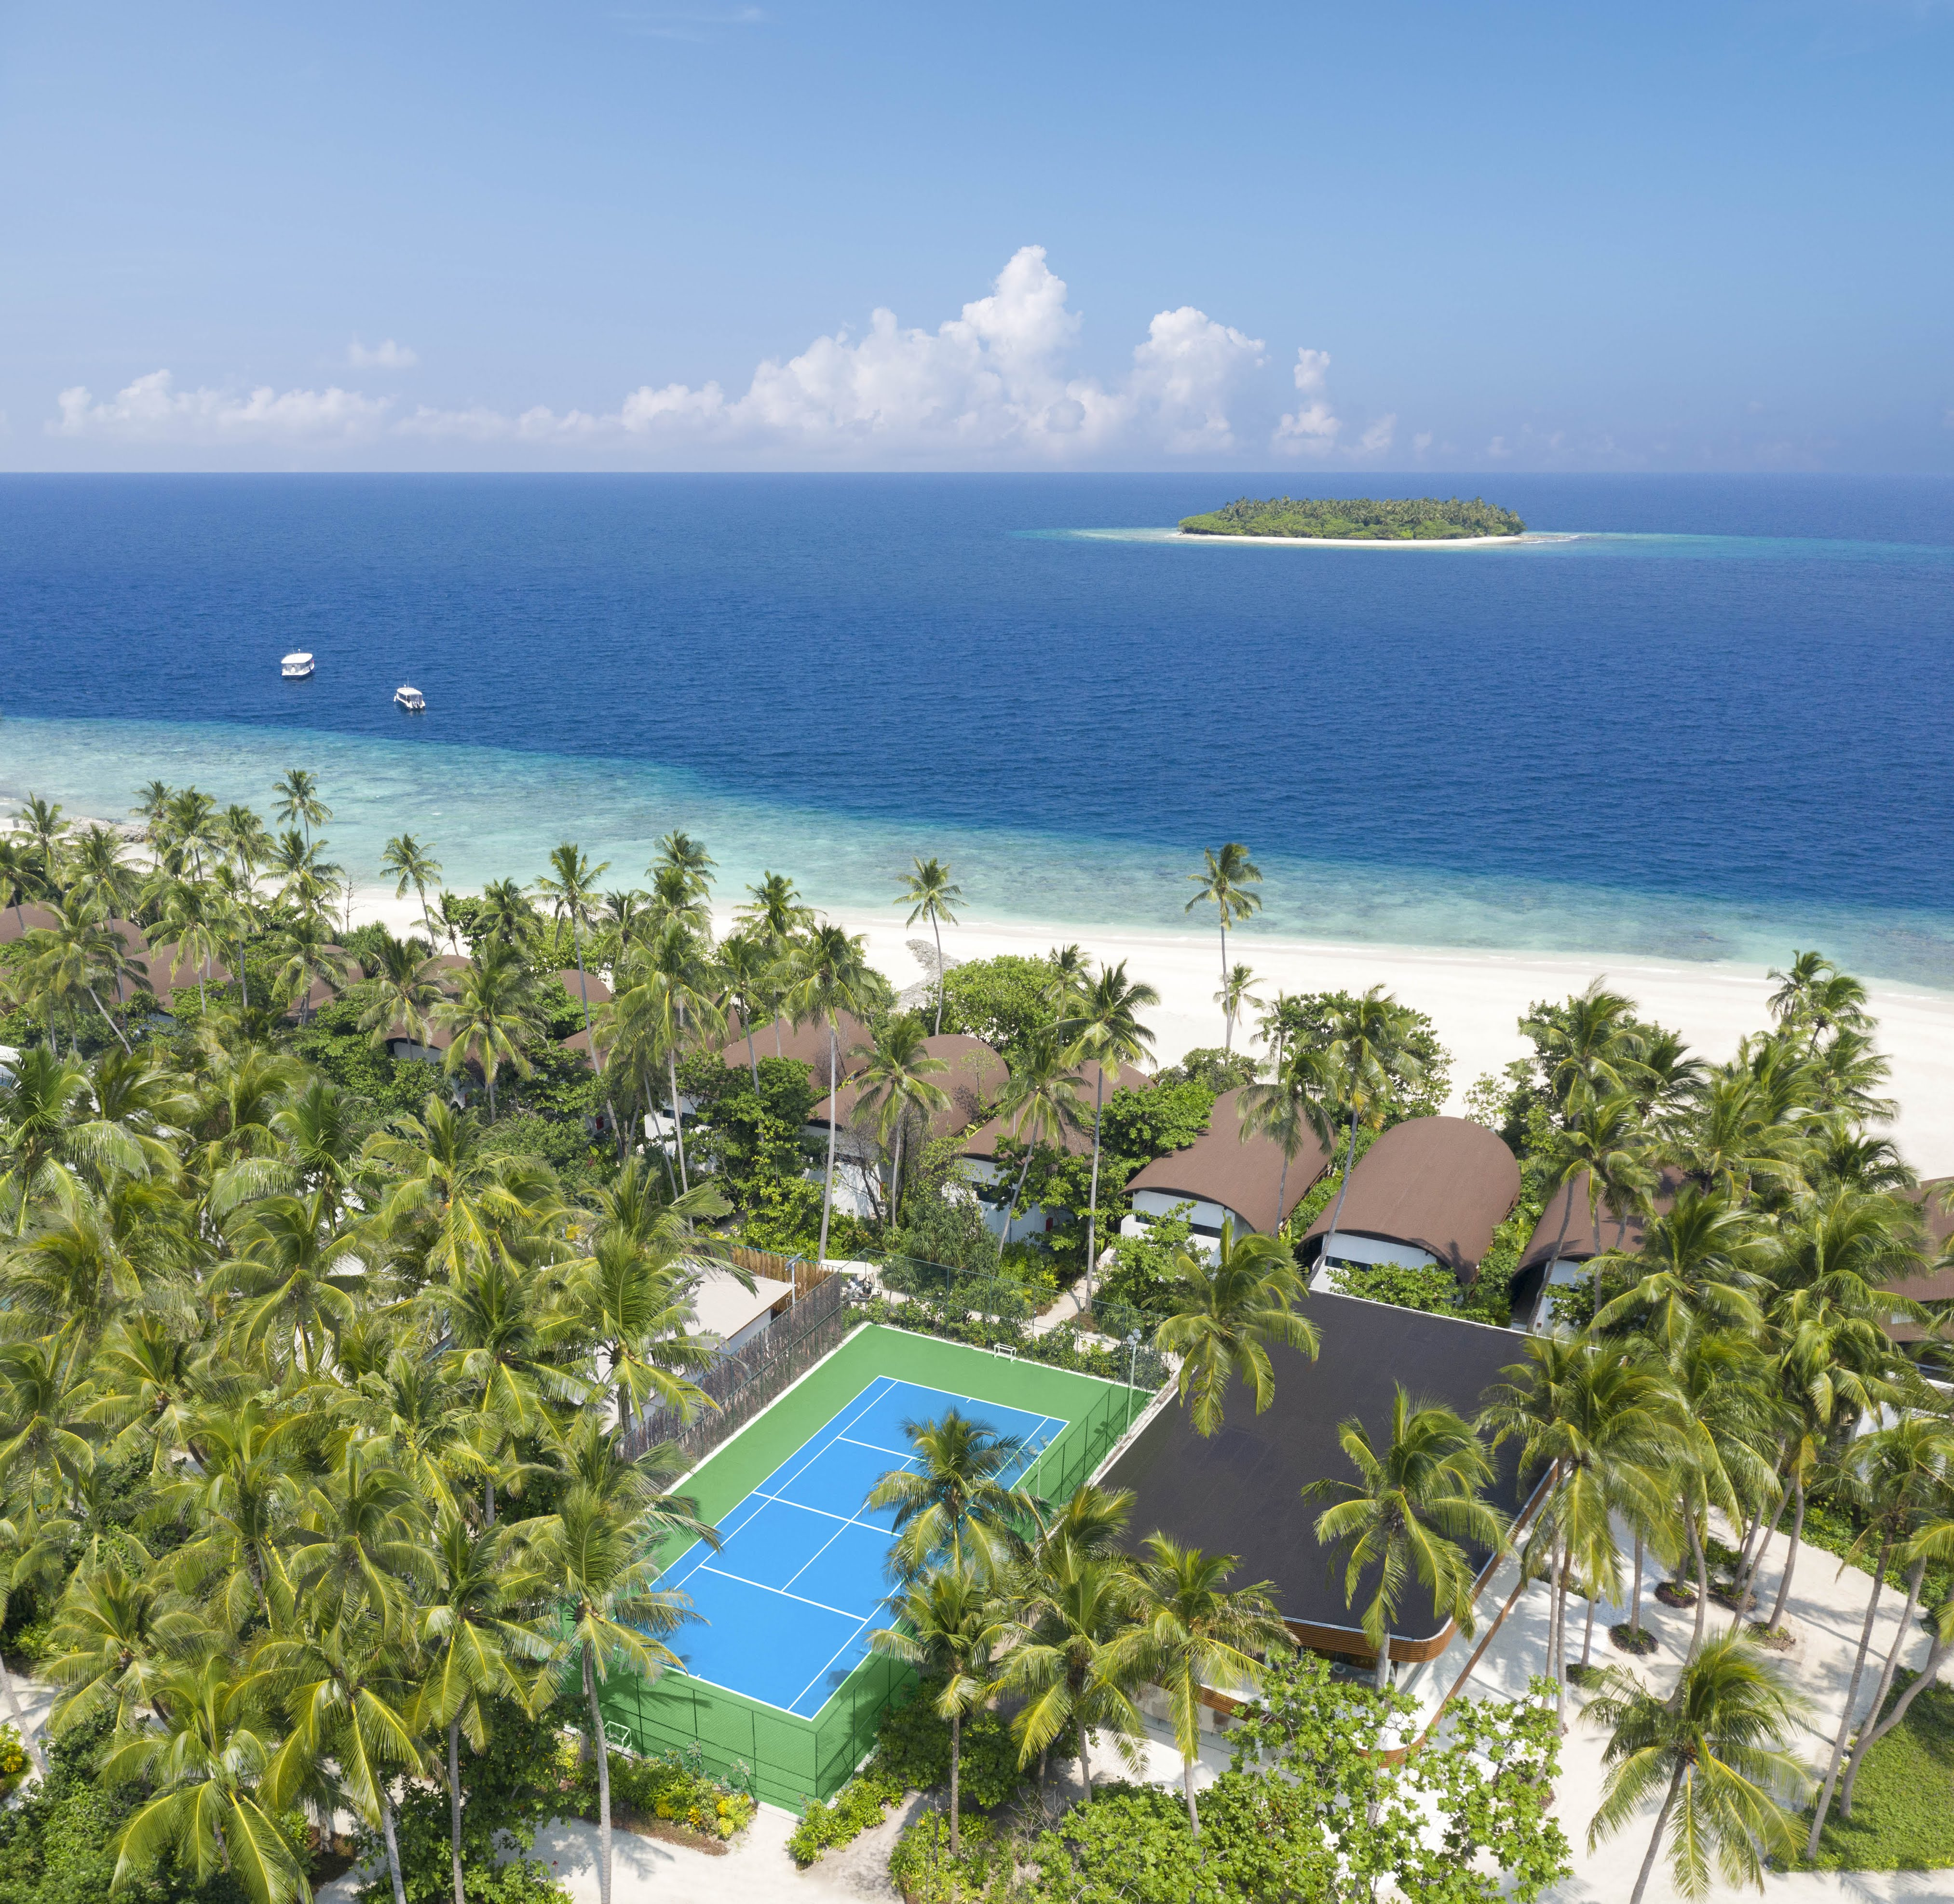 Westin Maldives activities